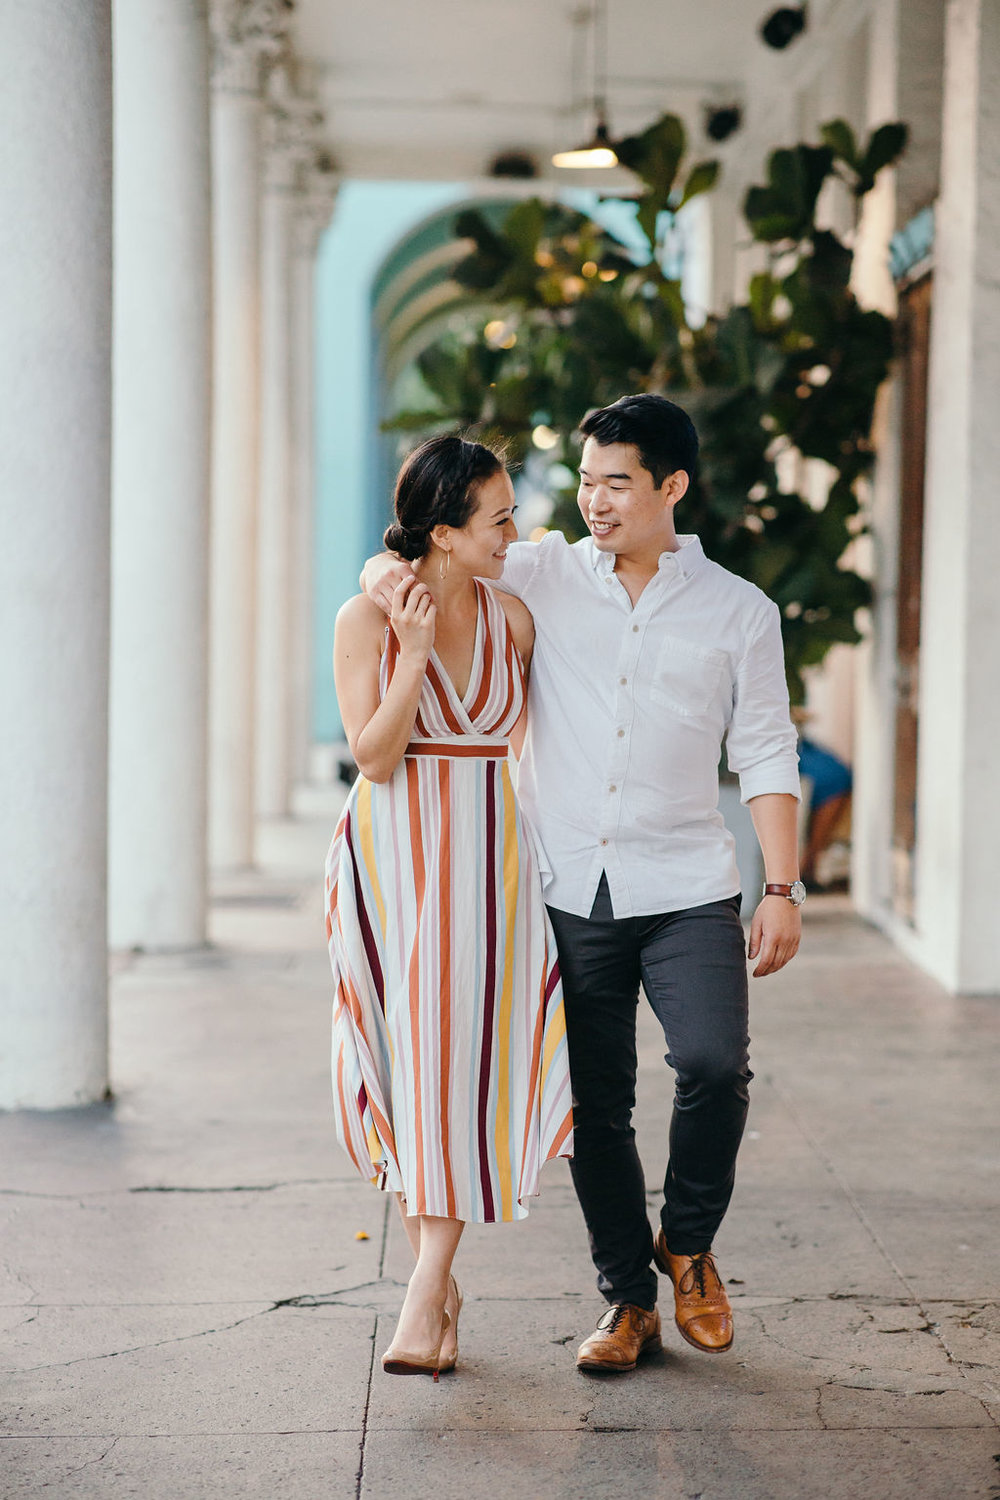 Venice Beach Engagement Photography 4 Los Angeles Orange County Wedding Photographer Joy Theory Co